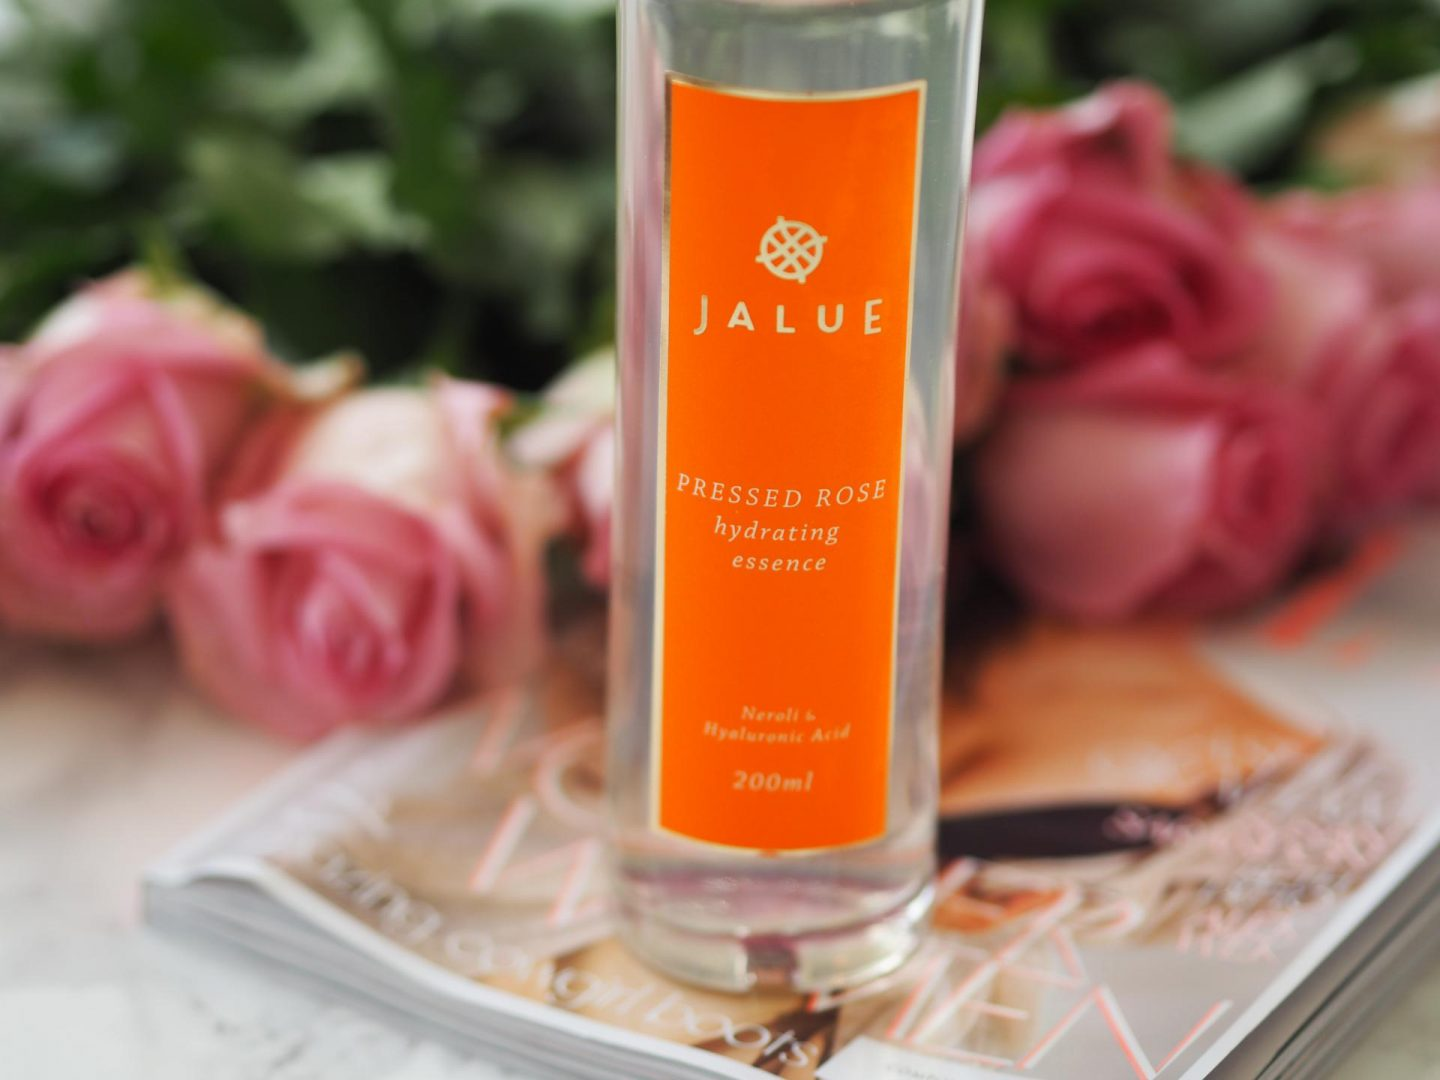 Jalue Pressed Rose Hydrating Essence